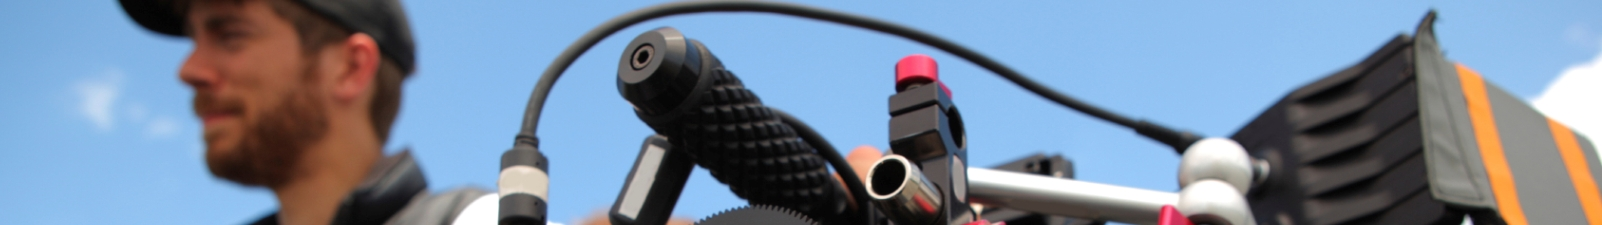 Fibre Optic Cable For Professional Video Cameras by Universal Networks